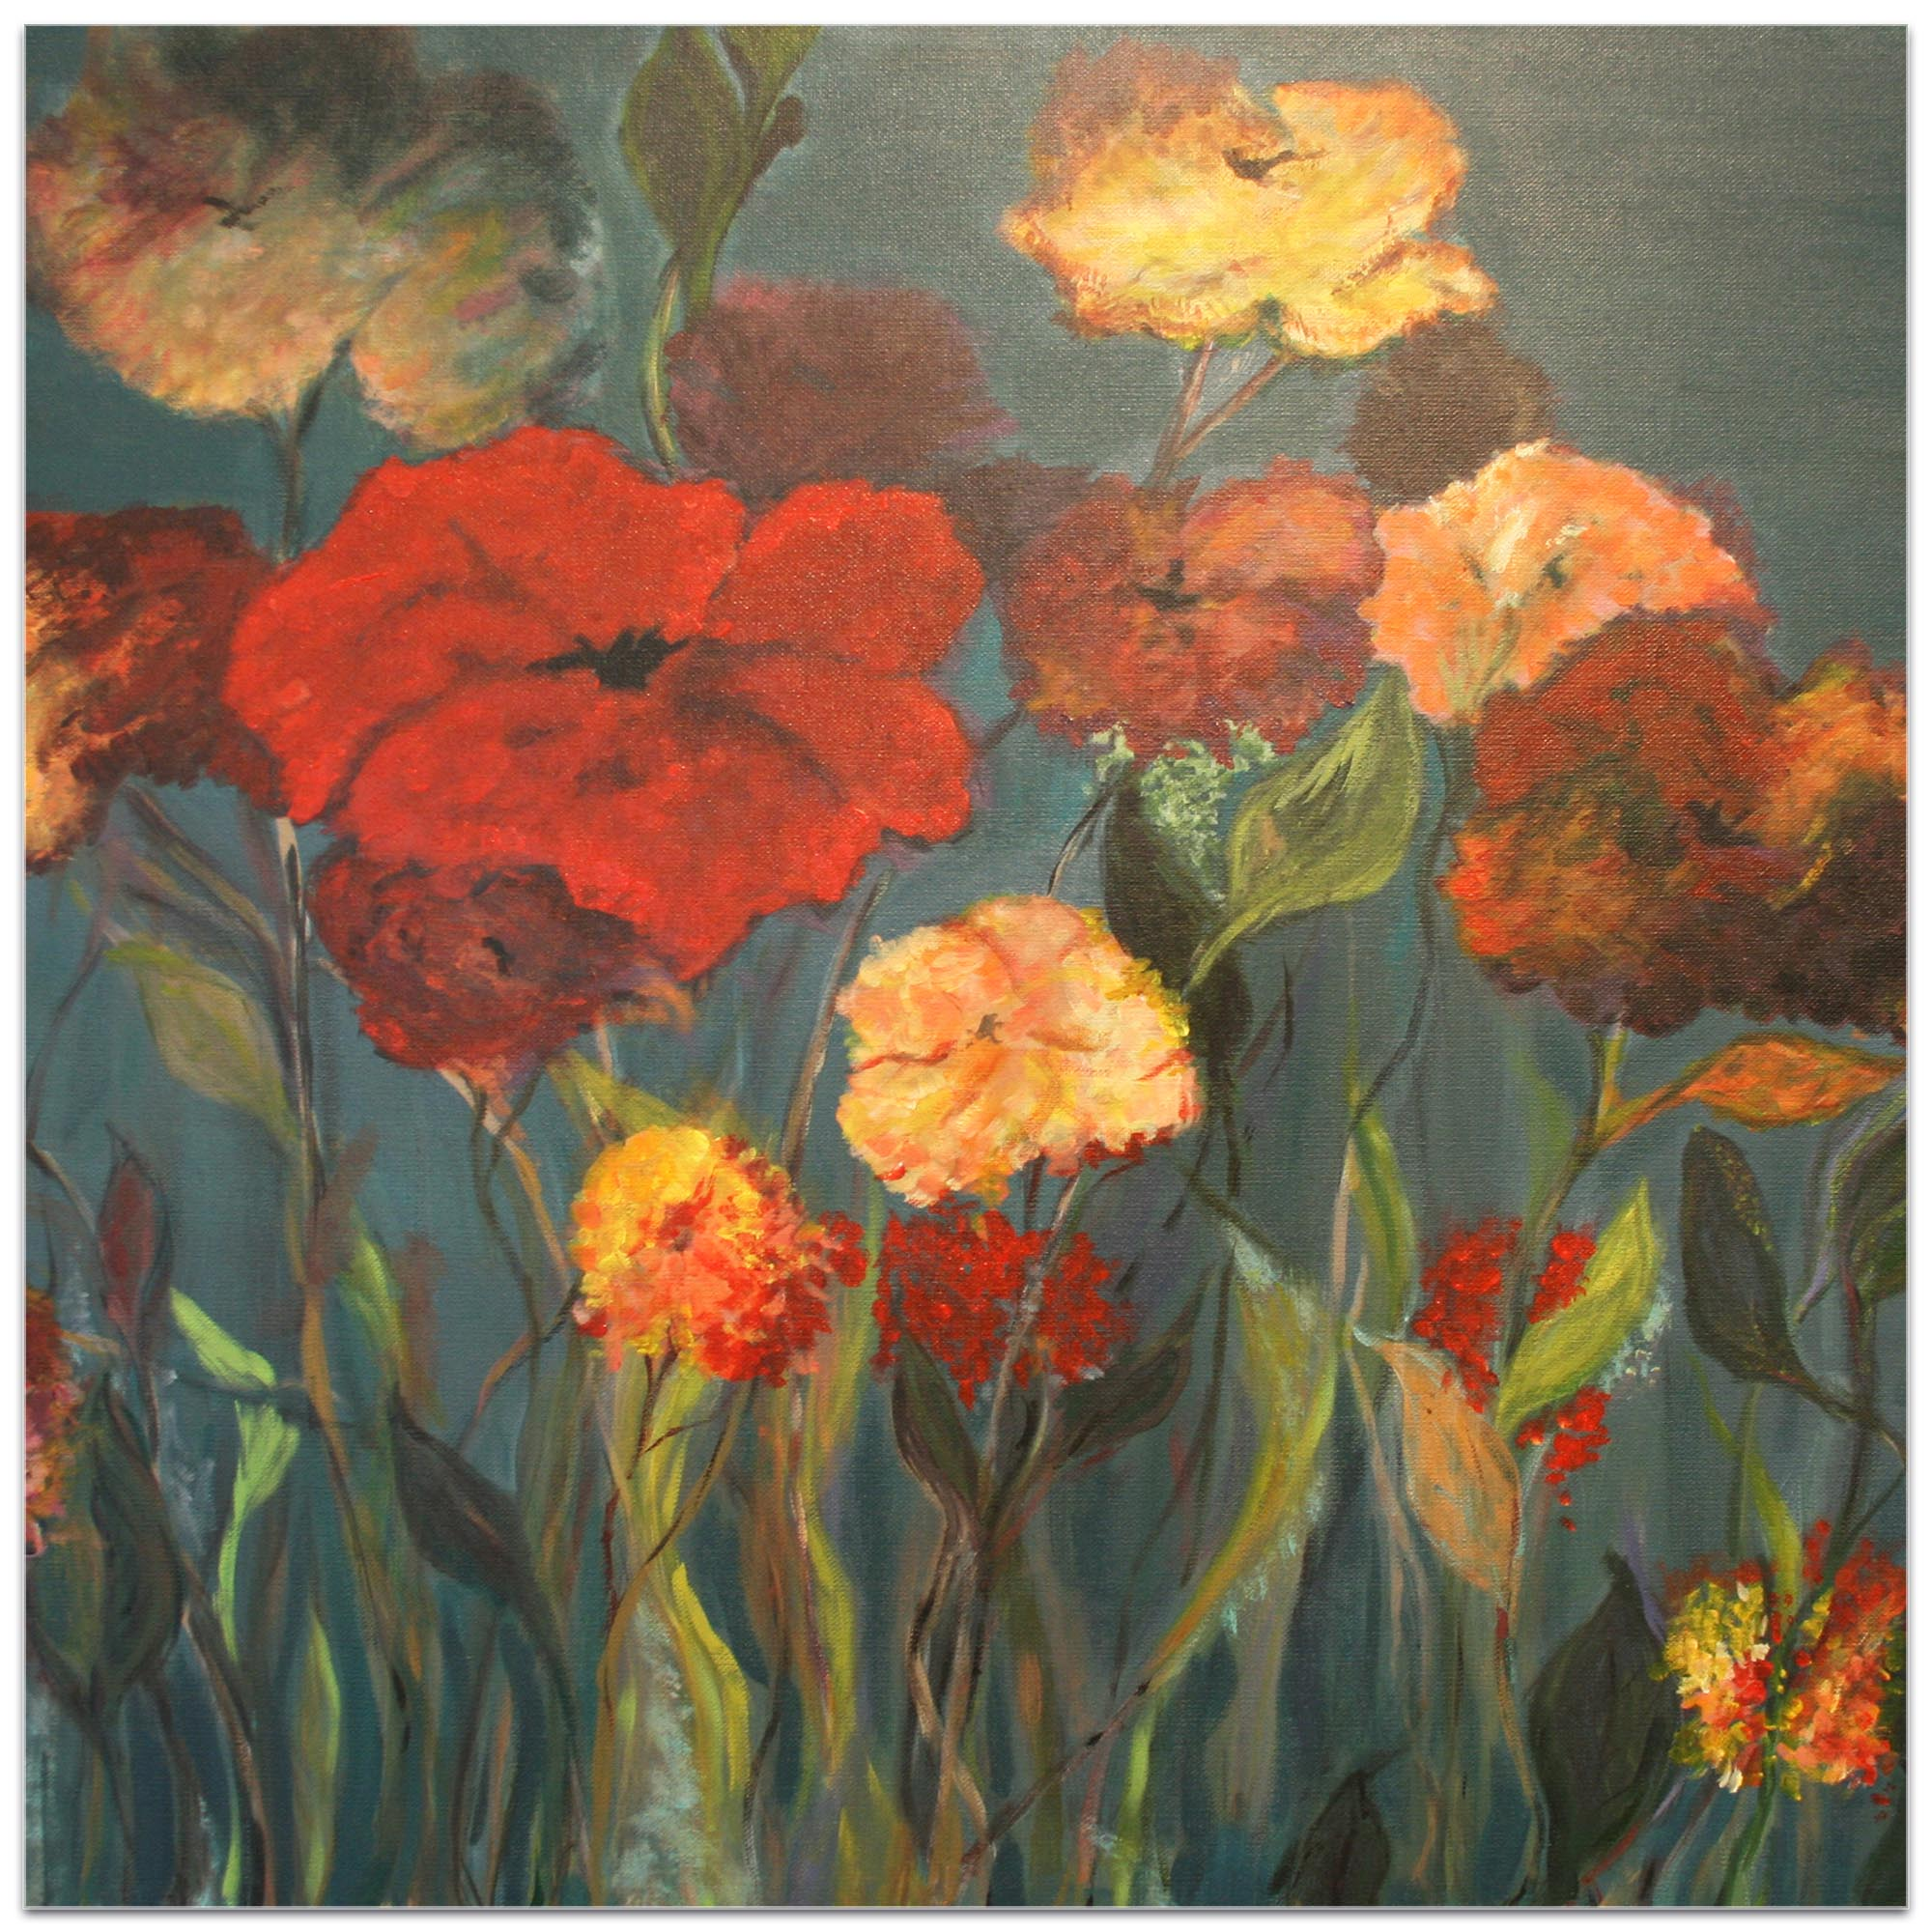 Traditional Wall Art 'Flower Patch' - Flower Bouquet Decor on Metal or Plexiglass - Image 2